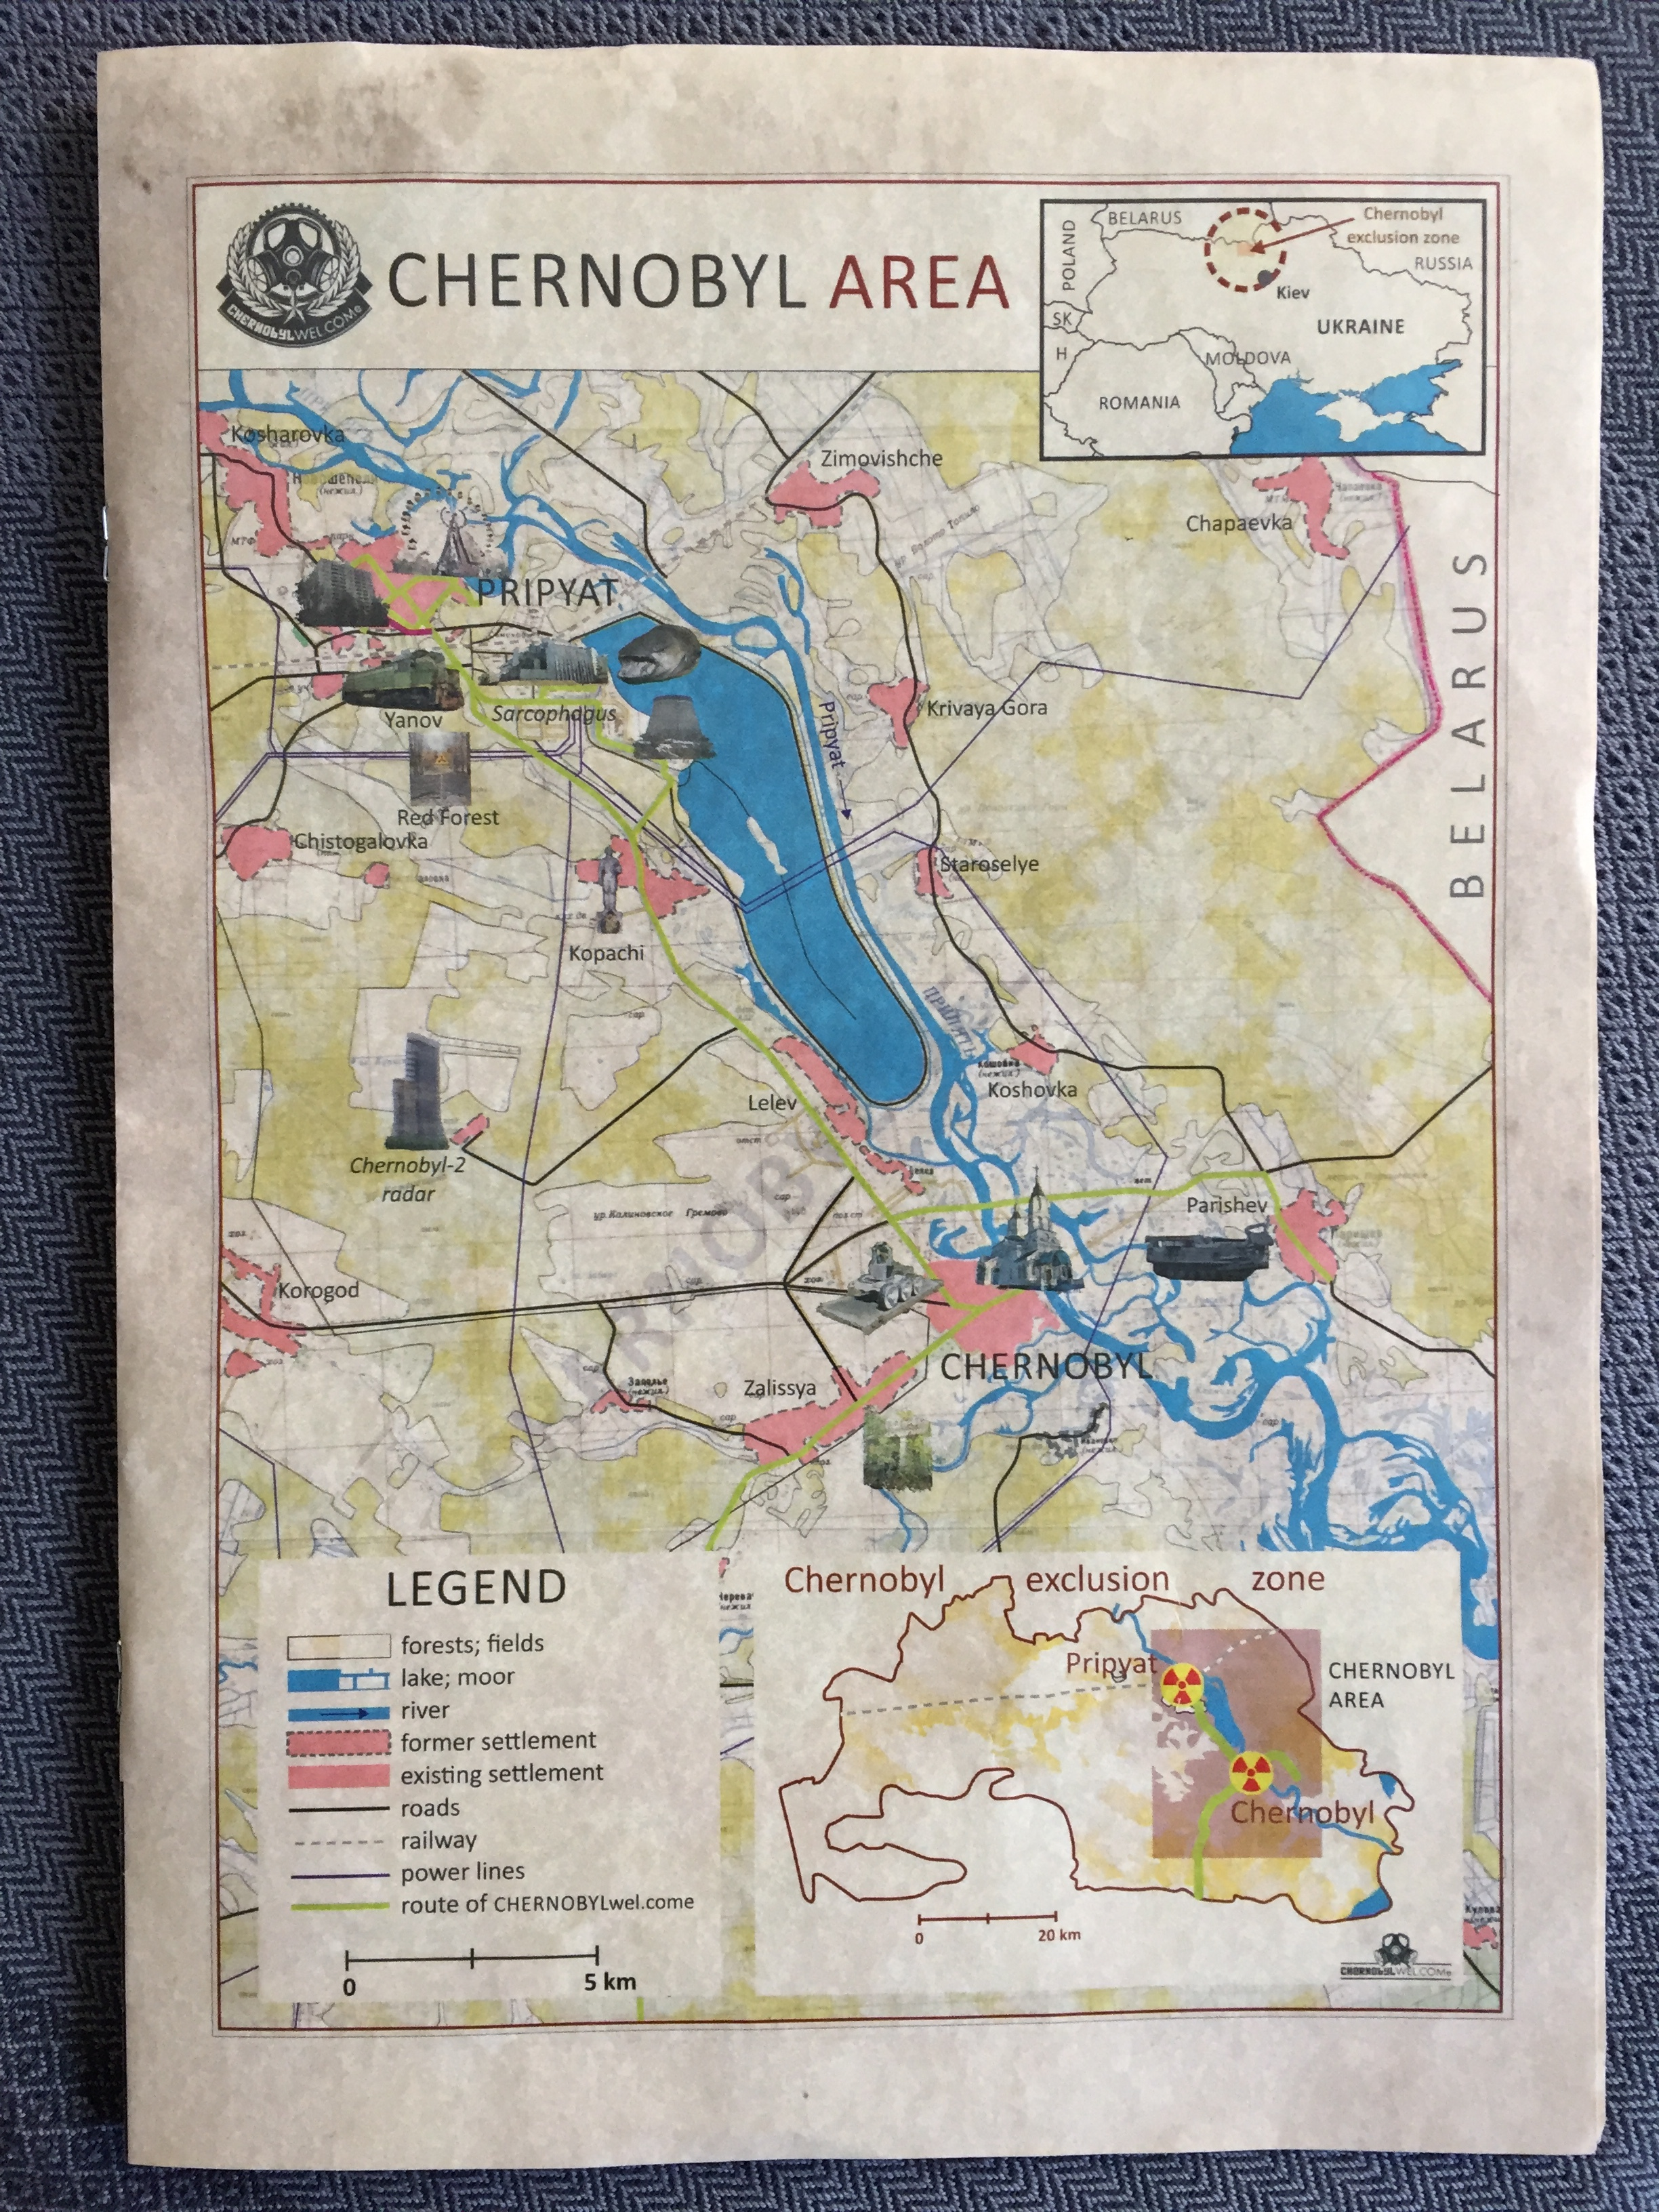 maps from tour company, Chernobyl Welcome